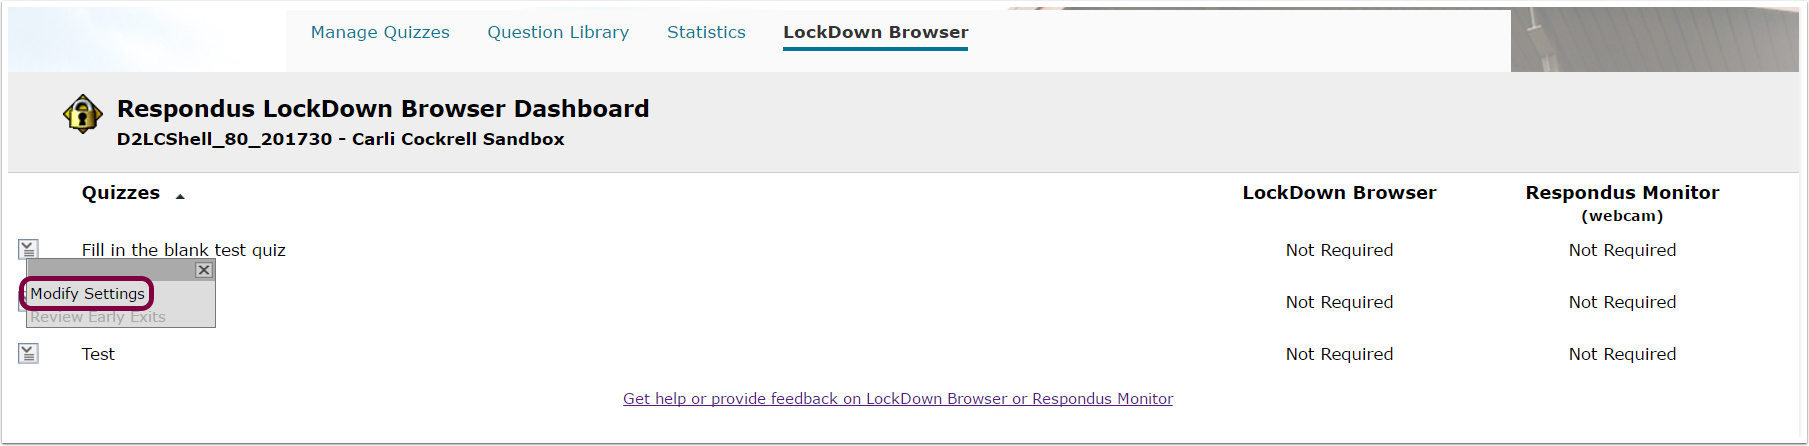 "2. Choose the assessment you would like to use Respondus Lockdown Browser and/or Respondus Monitor for, and select ""Modify Settings""."